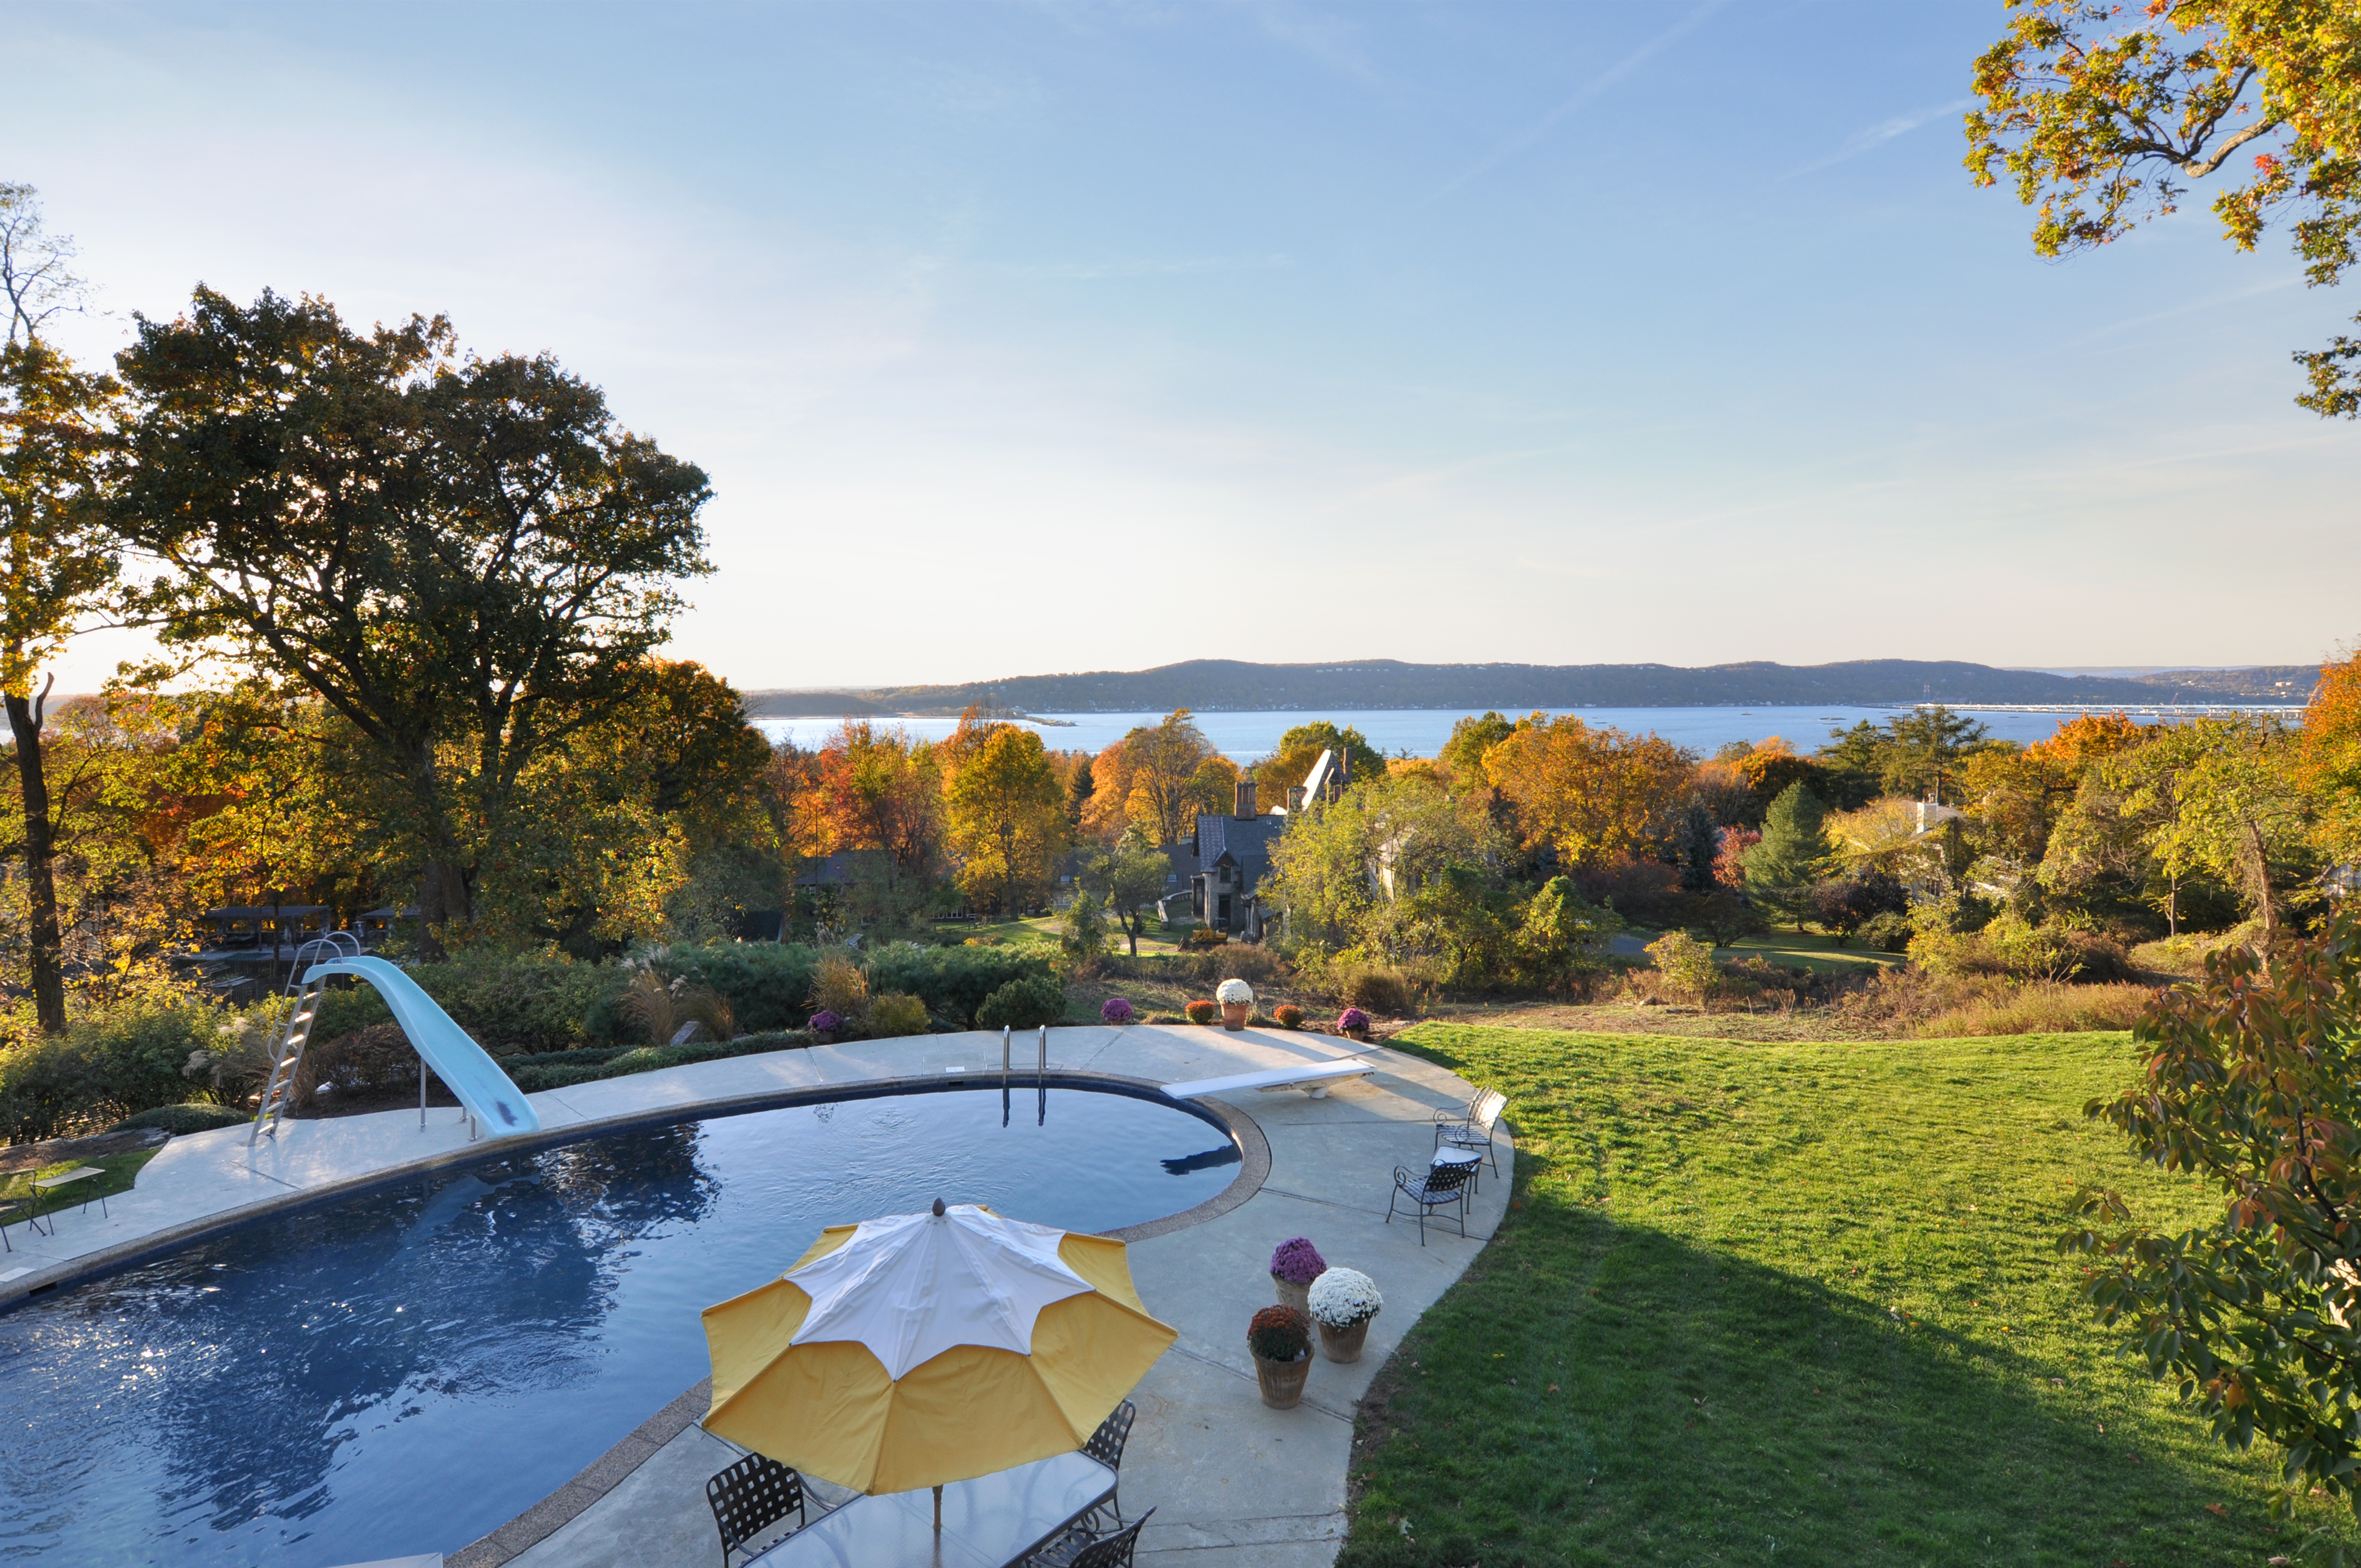 Single Family Home for Sale at Breathtaking Views! 7 Irving Place Irvington, New York, 10533 United States